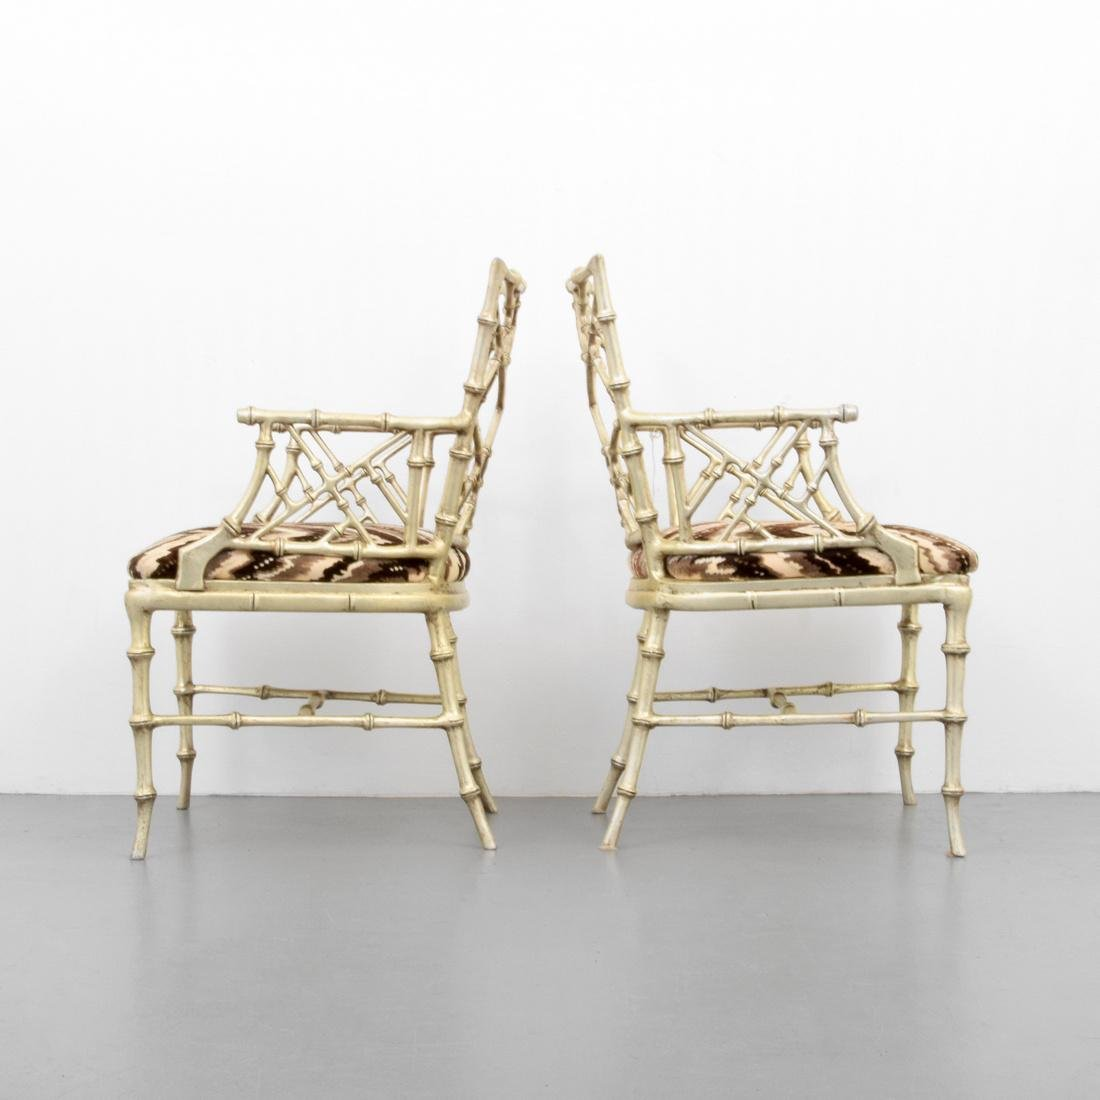 Pair of Phyllis Morris Originals Faux Bamboo Arm Chairs - 3